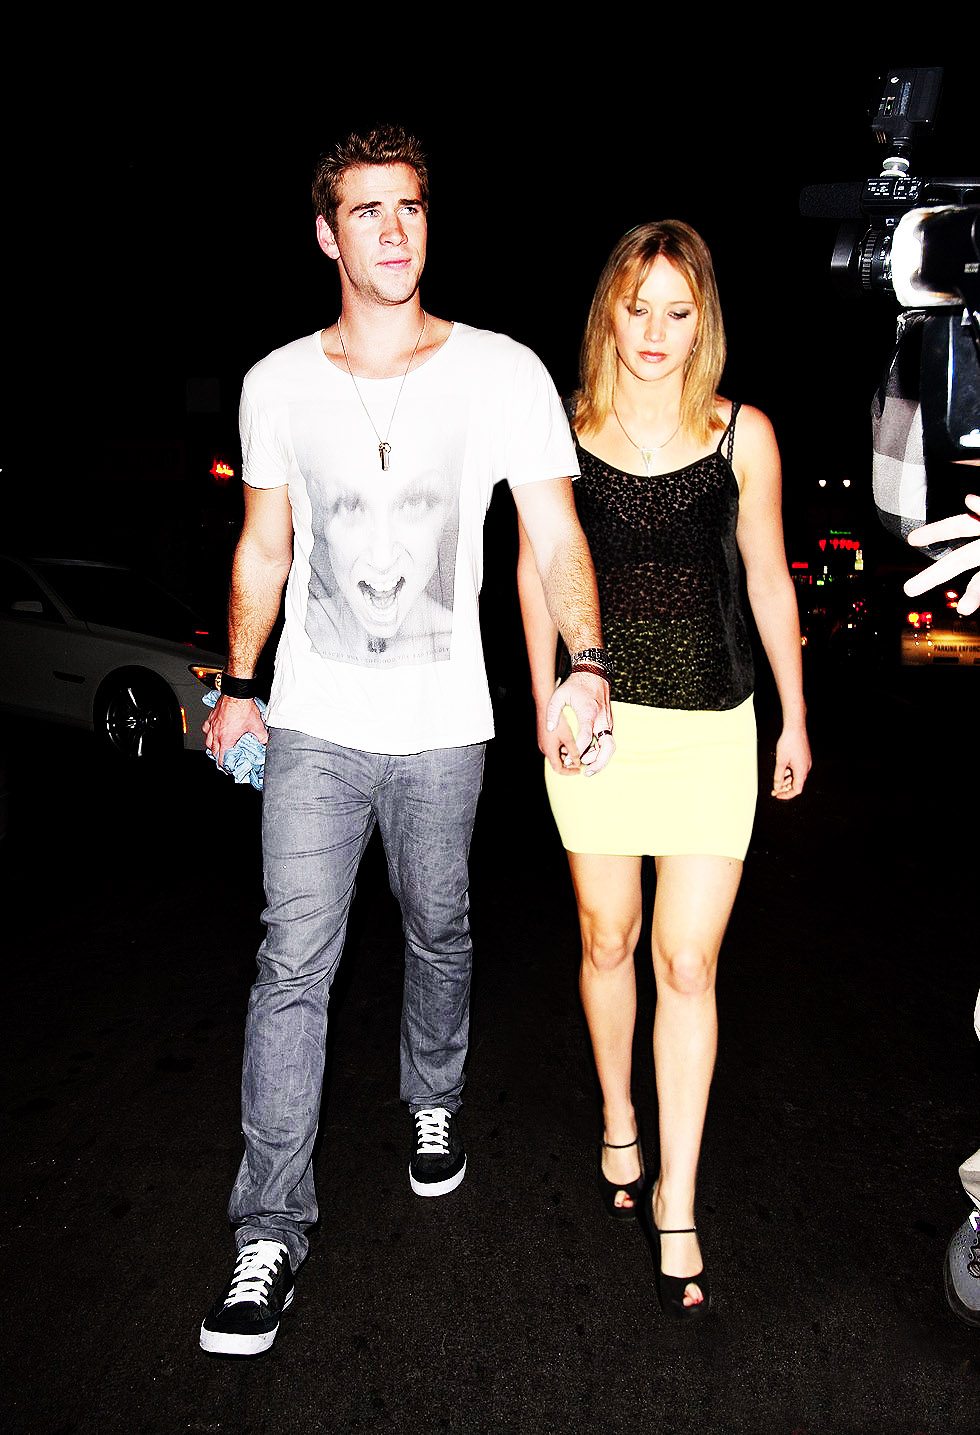 Liam Hemsworth and Jennifer Lawrence by ThatStarkLiam Hemsworth And Jennifer Lawrence